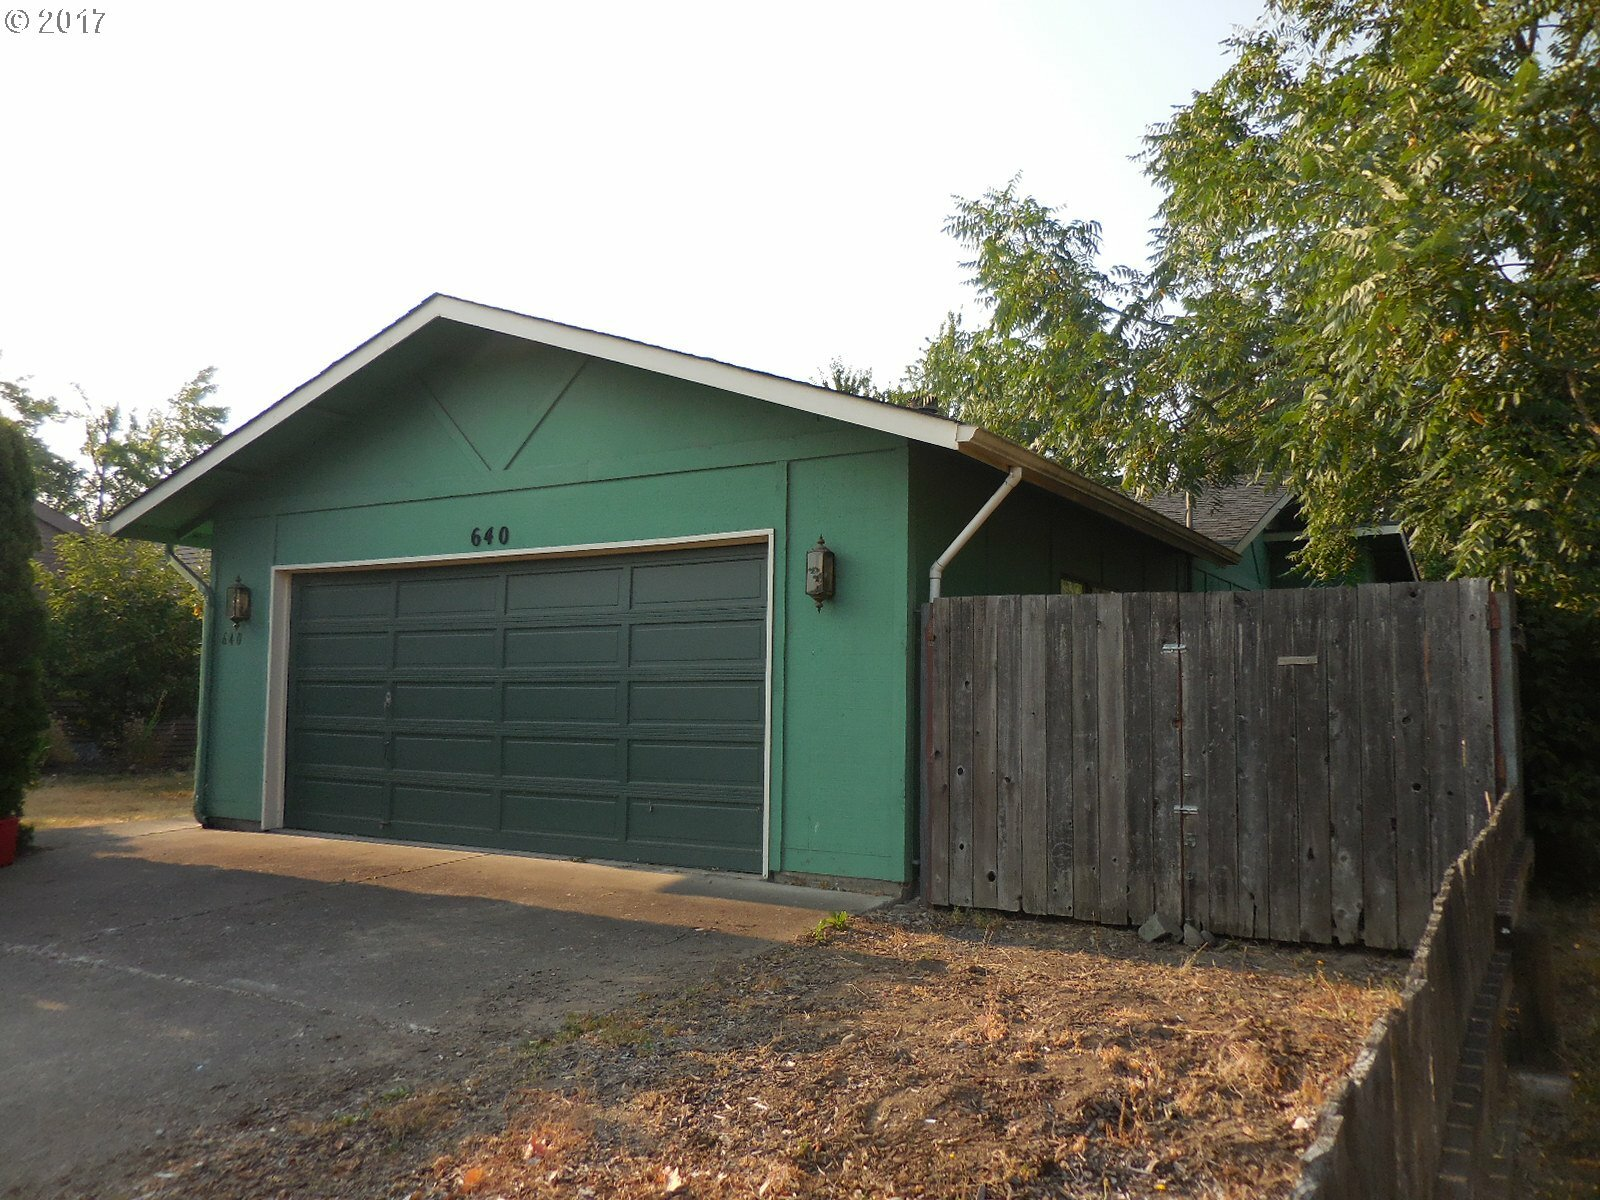 640 W 19th Ave, Eugene, OR - USA (photo 1)